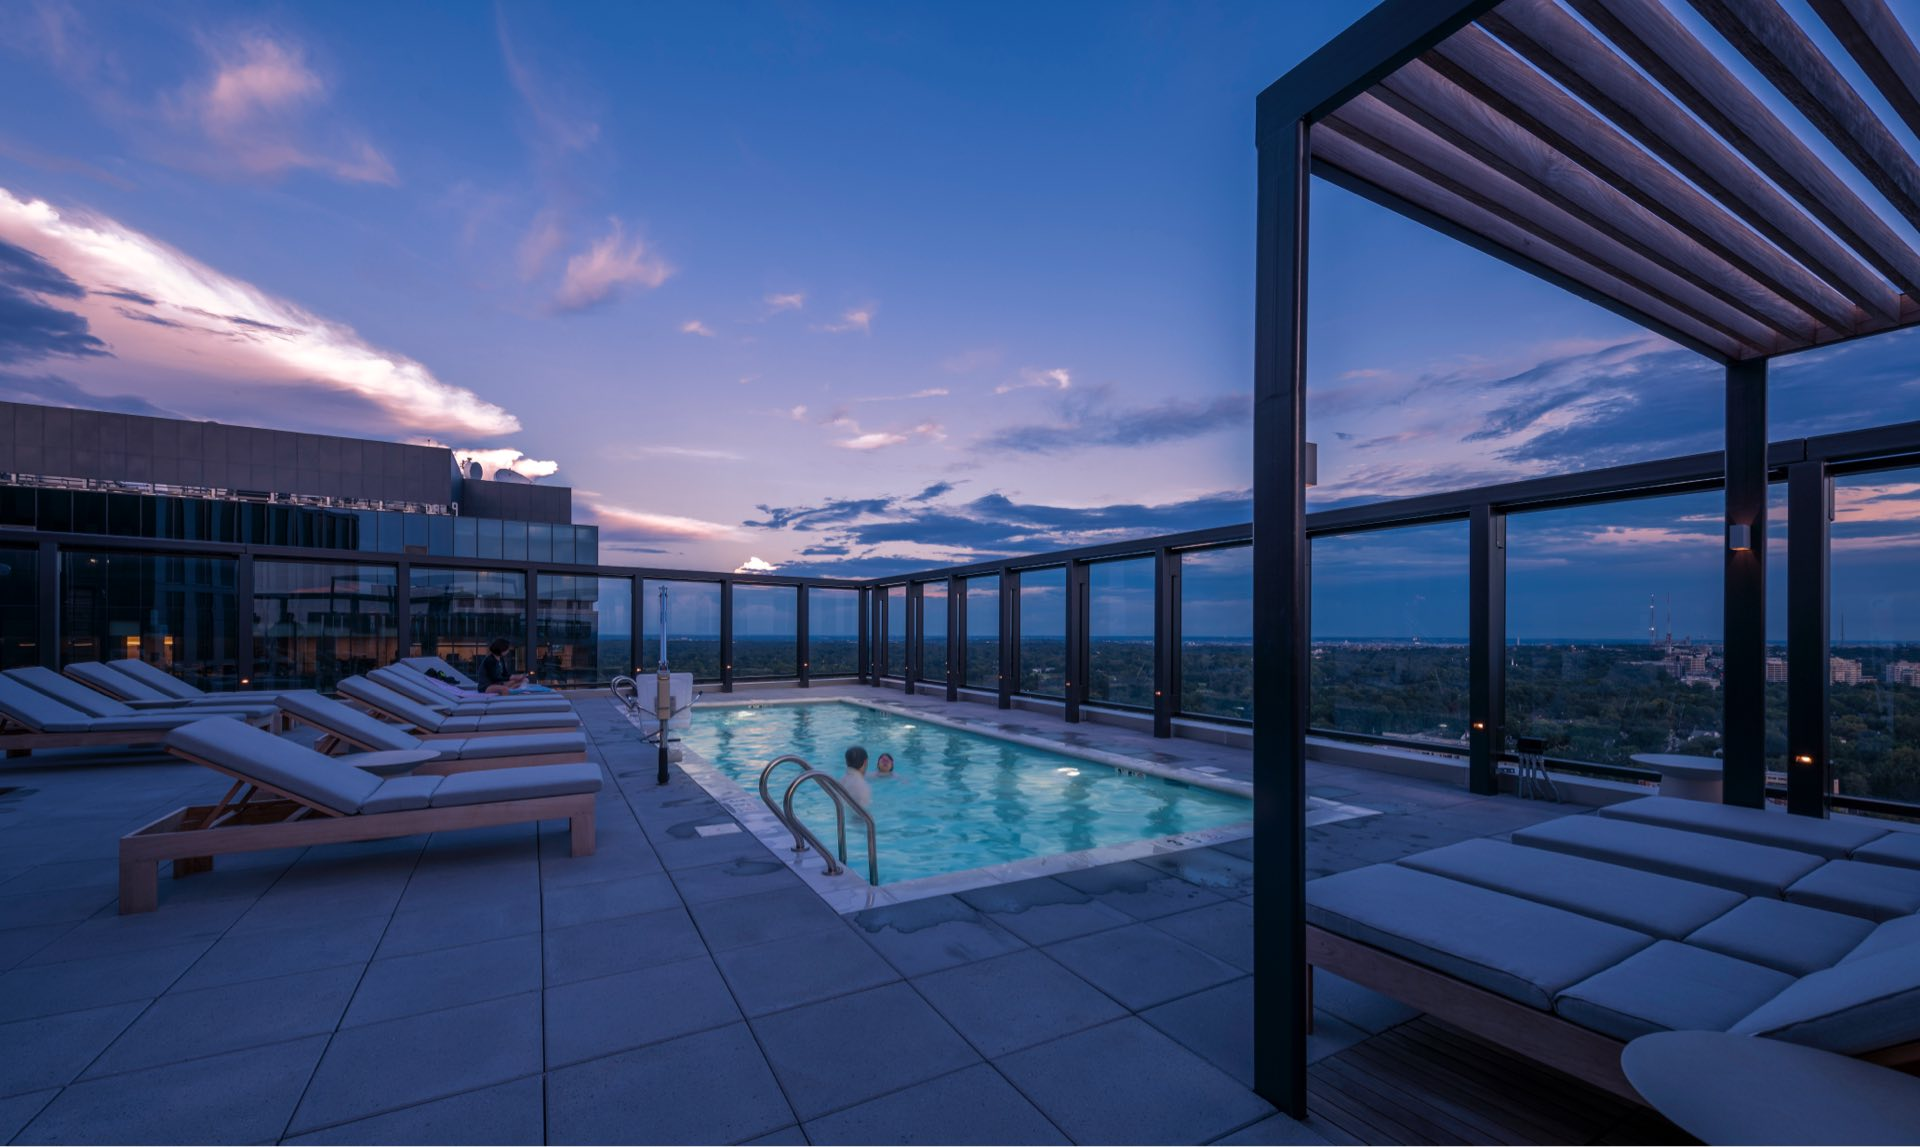 With panoramic views to enjoy sweeping sunset moments on the rooftop.